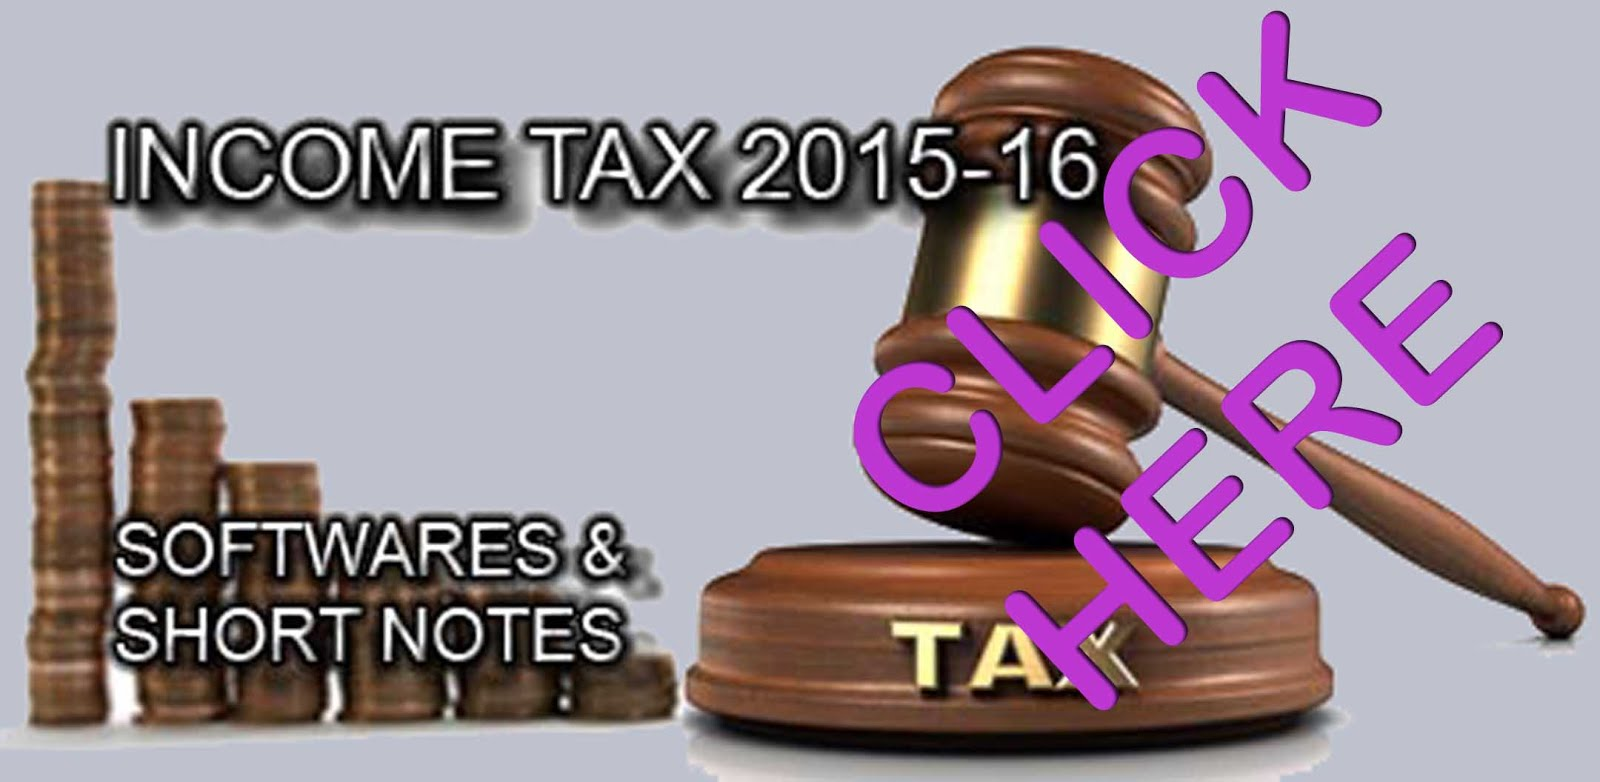 INCOME TAX - SOFTWARES AND SHORT NOTES FROM ALRAHIMAN